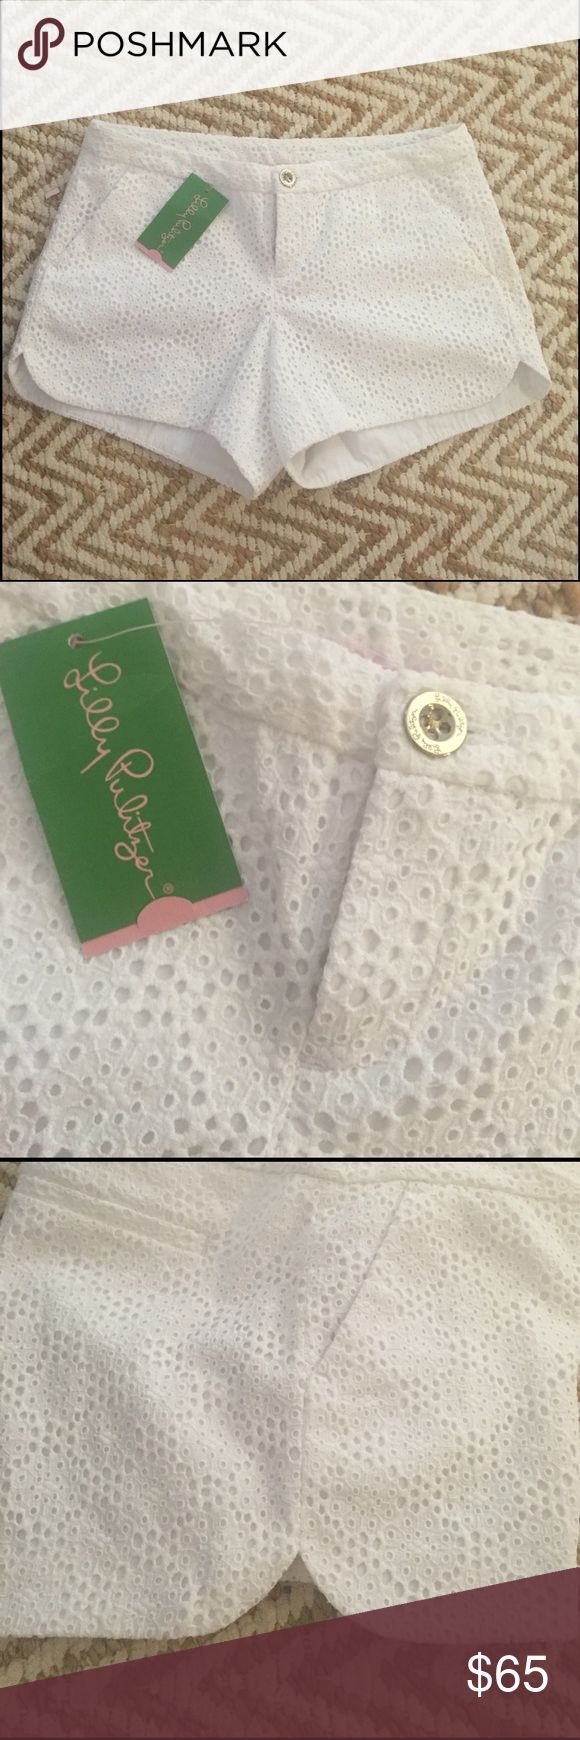 NWT Lilly Pulitzer Adie white eyelet shorts 0 Never worn NWT Lilly Pulitzer Adie shorts in a super cute white eyelet fabric. These shorts are seriously adorable!!!!!! The sides have a sort of rounded edge as shown in the photos. Unfortunately these are just a bit big for me so I'm selling! Open to reasonable offers, no trades ☺️ Lilly Pulitzer Shorts